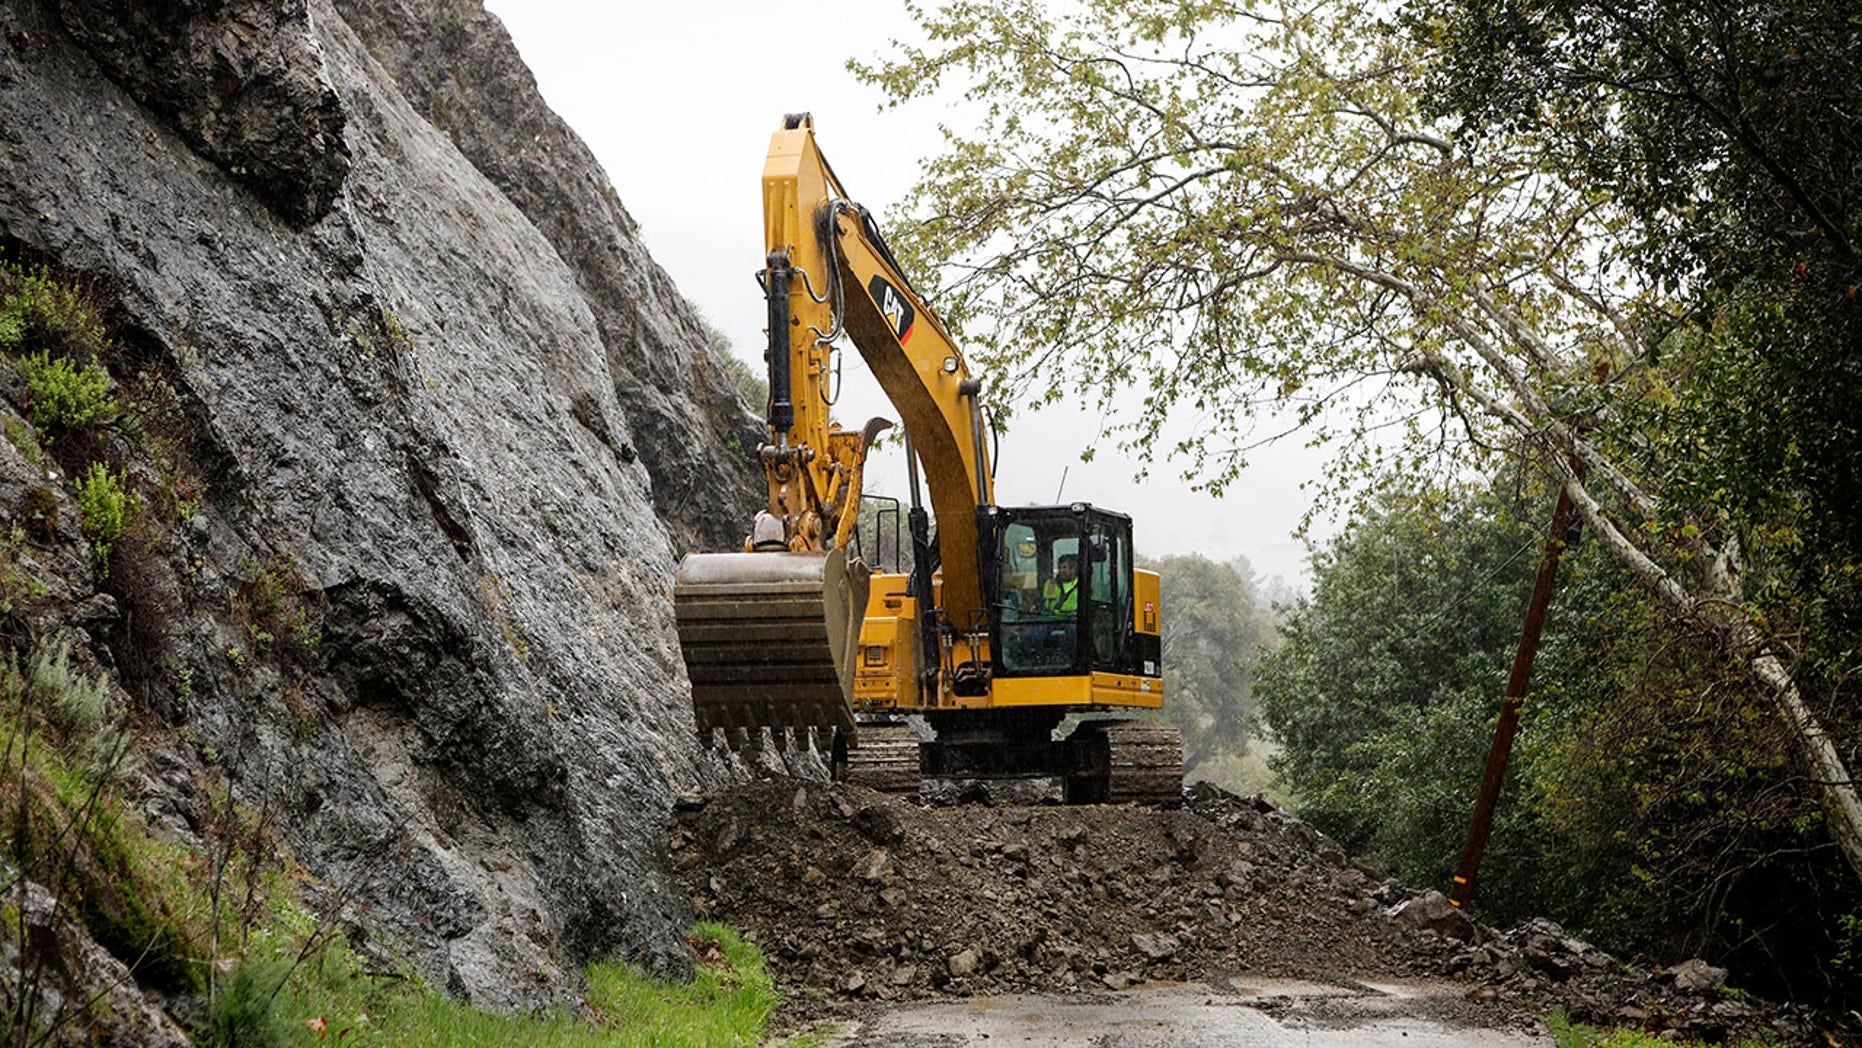 A crew works to clear Santa Rosa Creek Road after a rockslide in Cambria, Callif. Crews worked Wednesday, March 21, 2018, to clean up the rockslide.